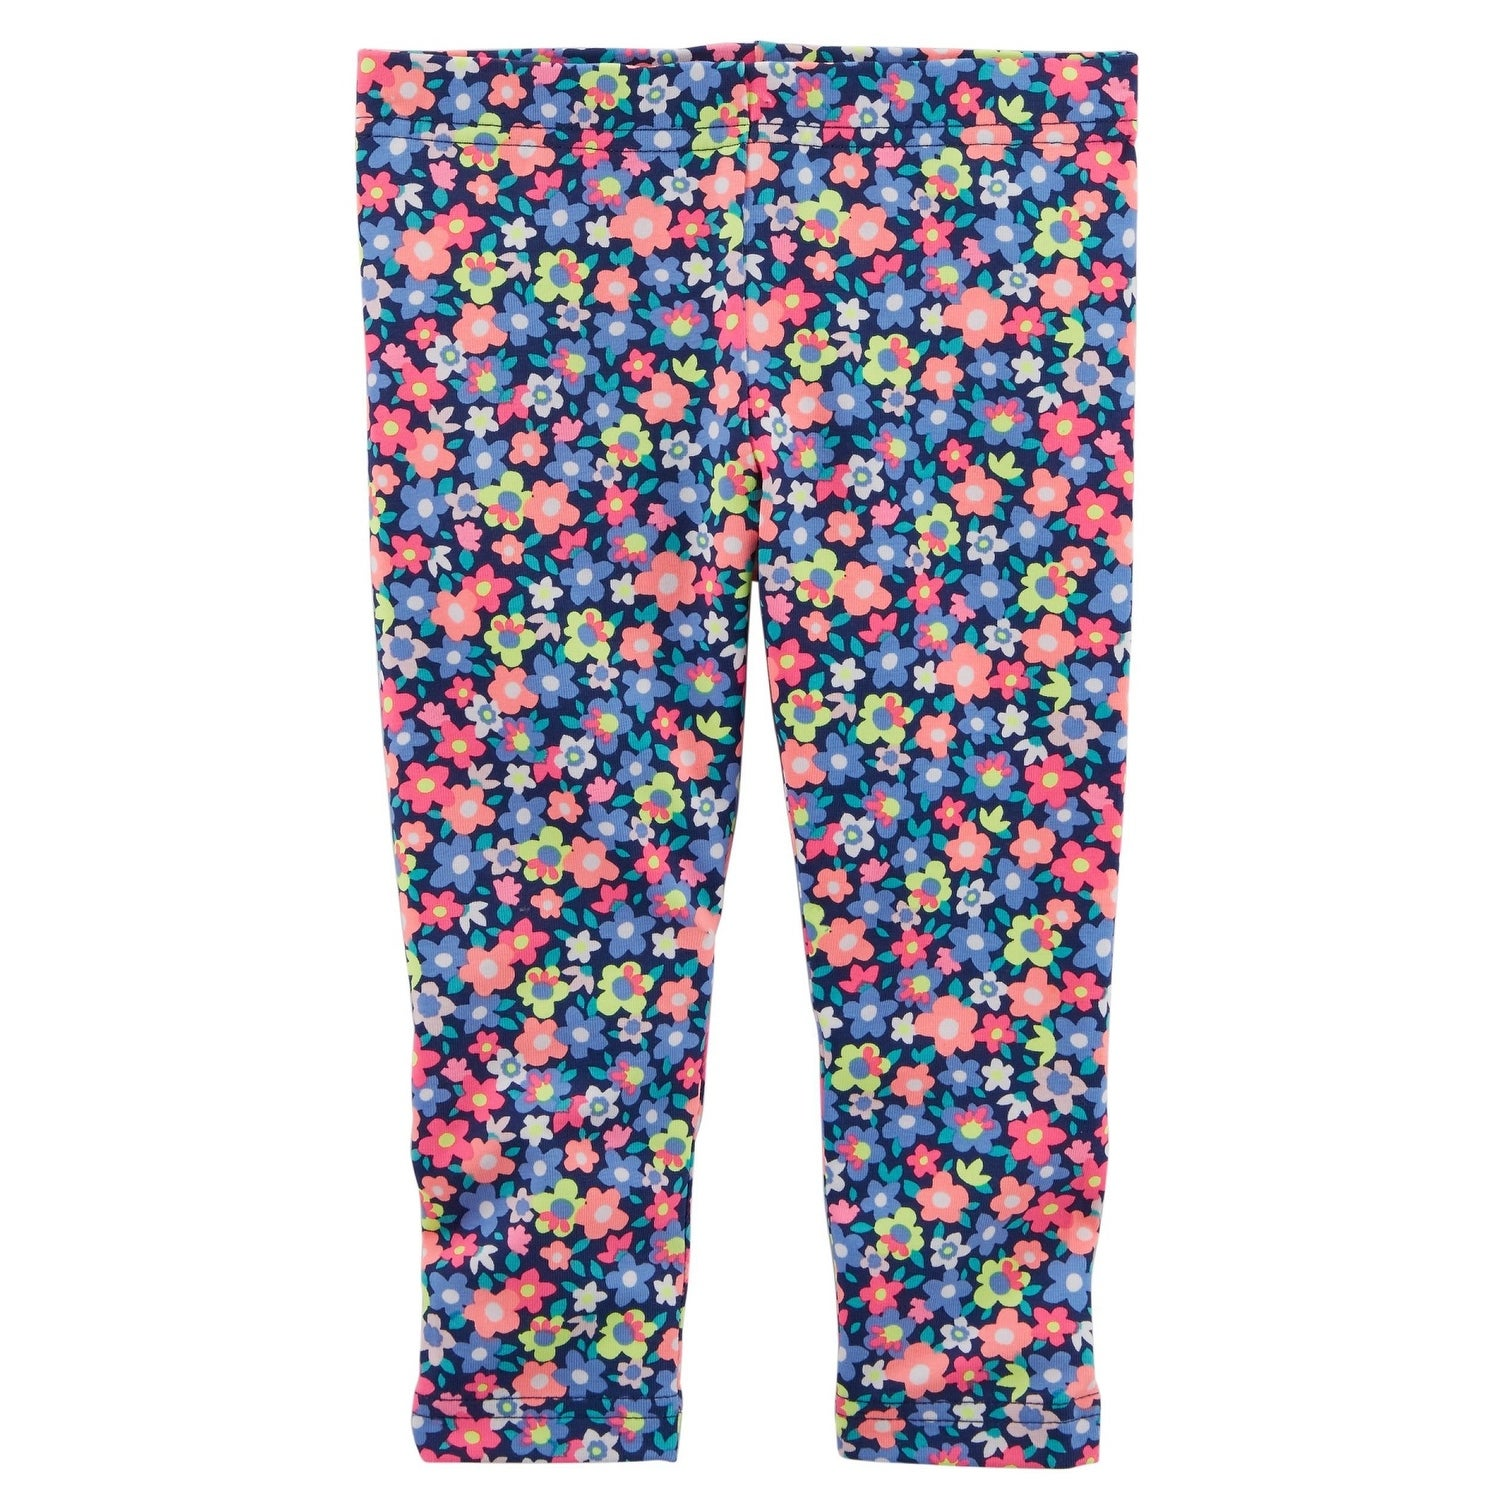 Shop Carter S Baby Girls Floral Capri Leggings Blue Floral 9 Months Free Shipping On Orders Over 45 Overstock 27032986